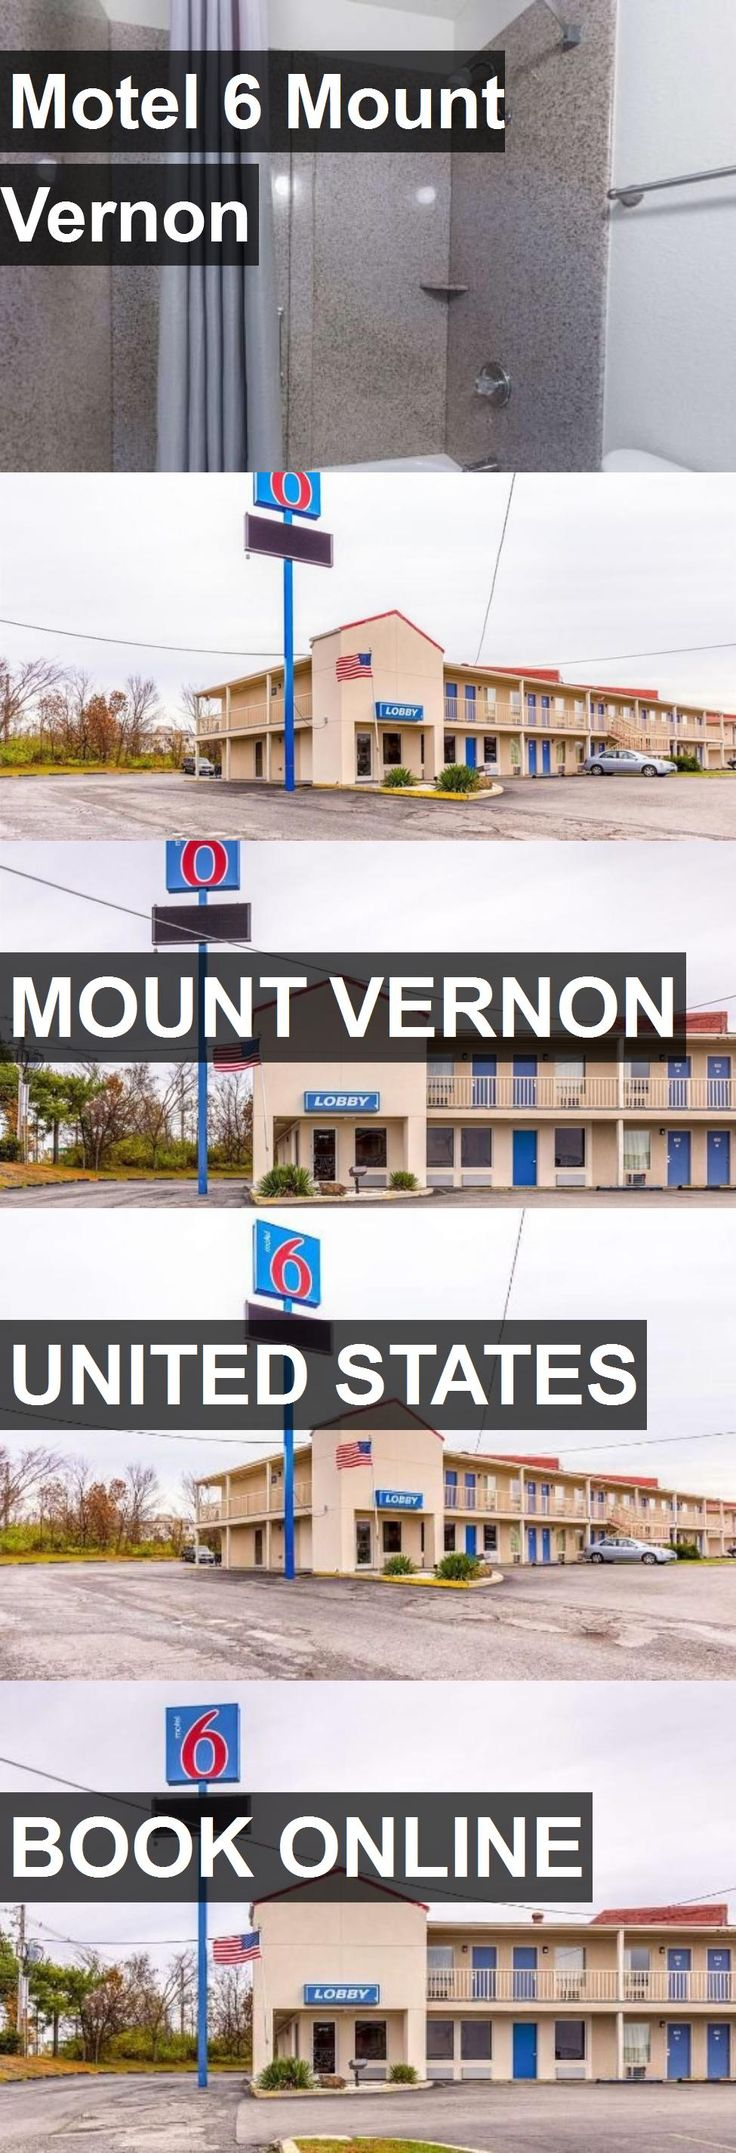 Hotel Motel 6 Mount Vernon in Mount Vernon, United States. For more information, photos, reviews and best prices please follow the link. #UnitedStates #MountVernon #travel #vacation #hotel